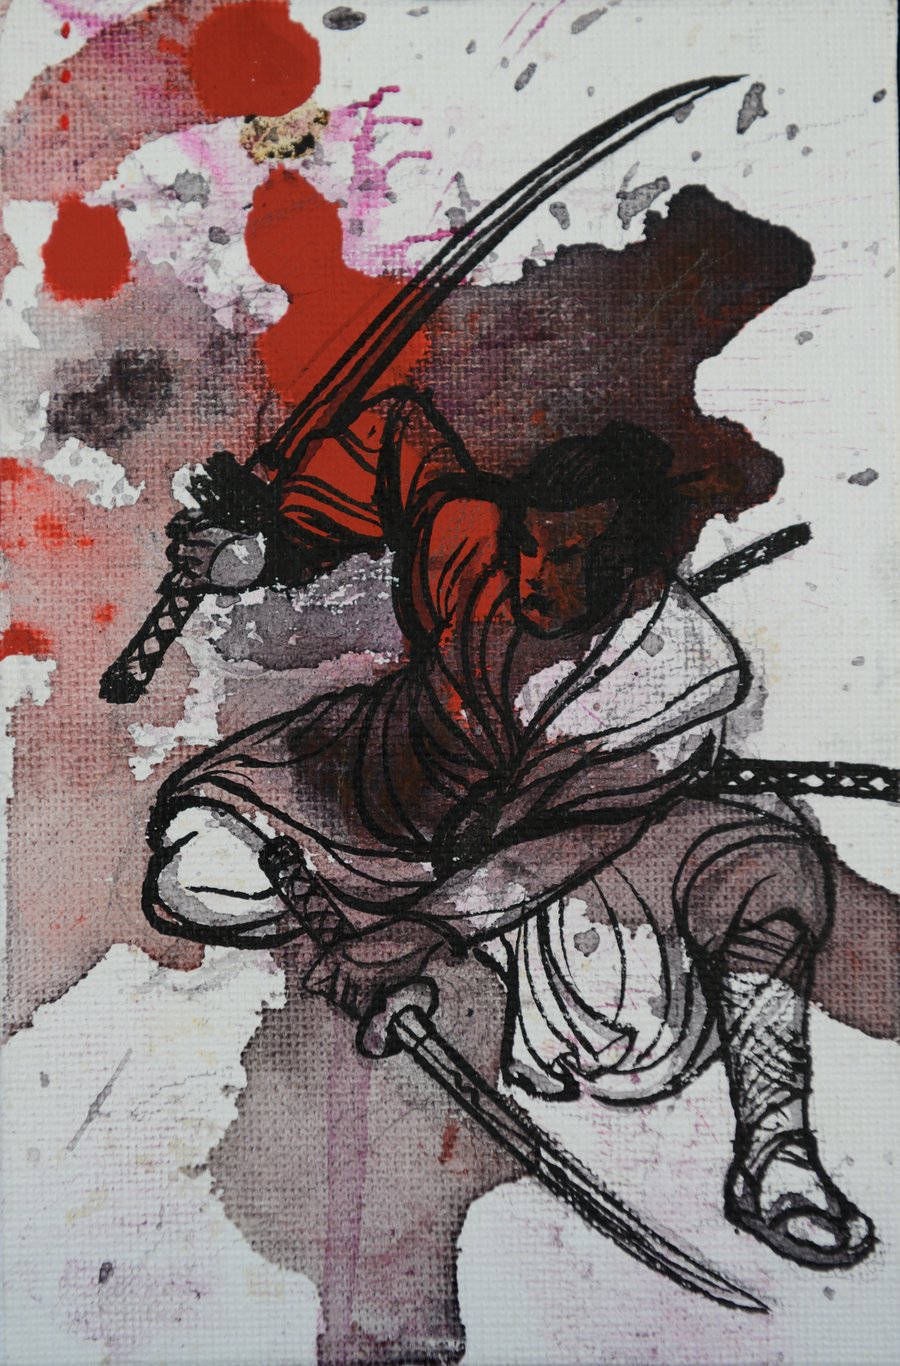 Drawn samurai two sword ThoughtsThunk ThoughtsThunk warrior two on